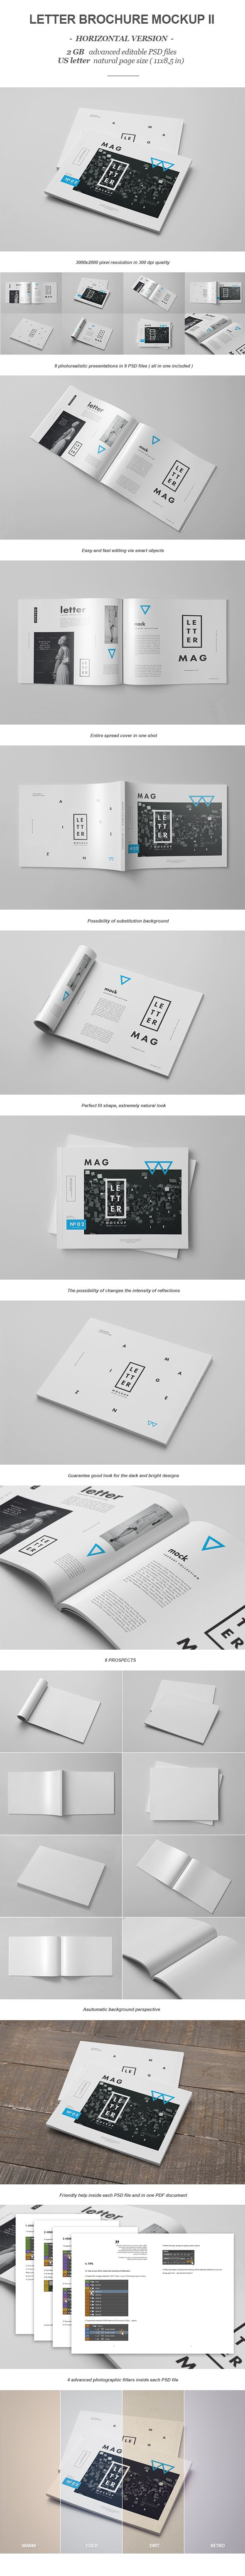 Horizontal Letter Magazine / Brochure Mock-up 2 on Behance